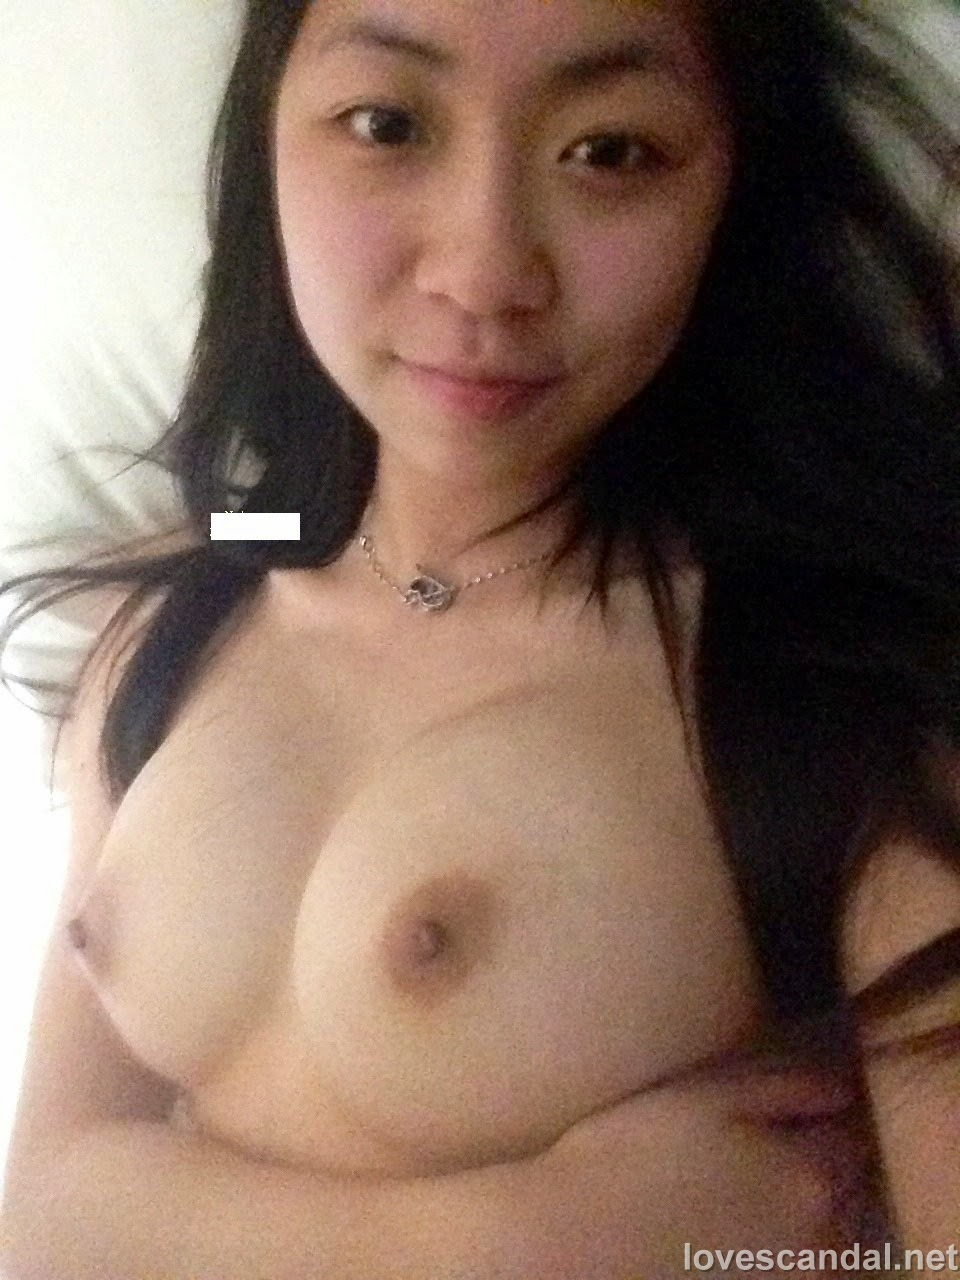 Singapore jc girl blowjob 5